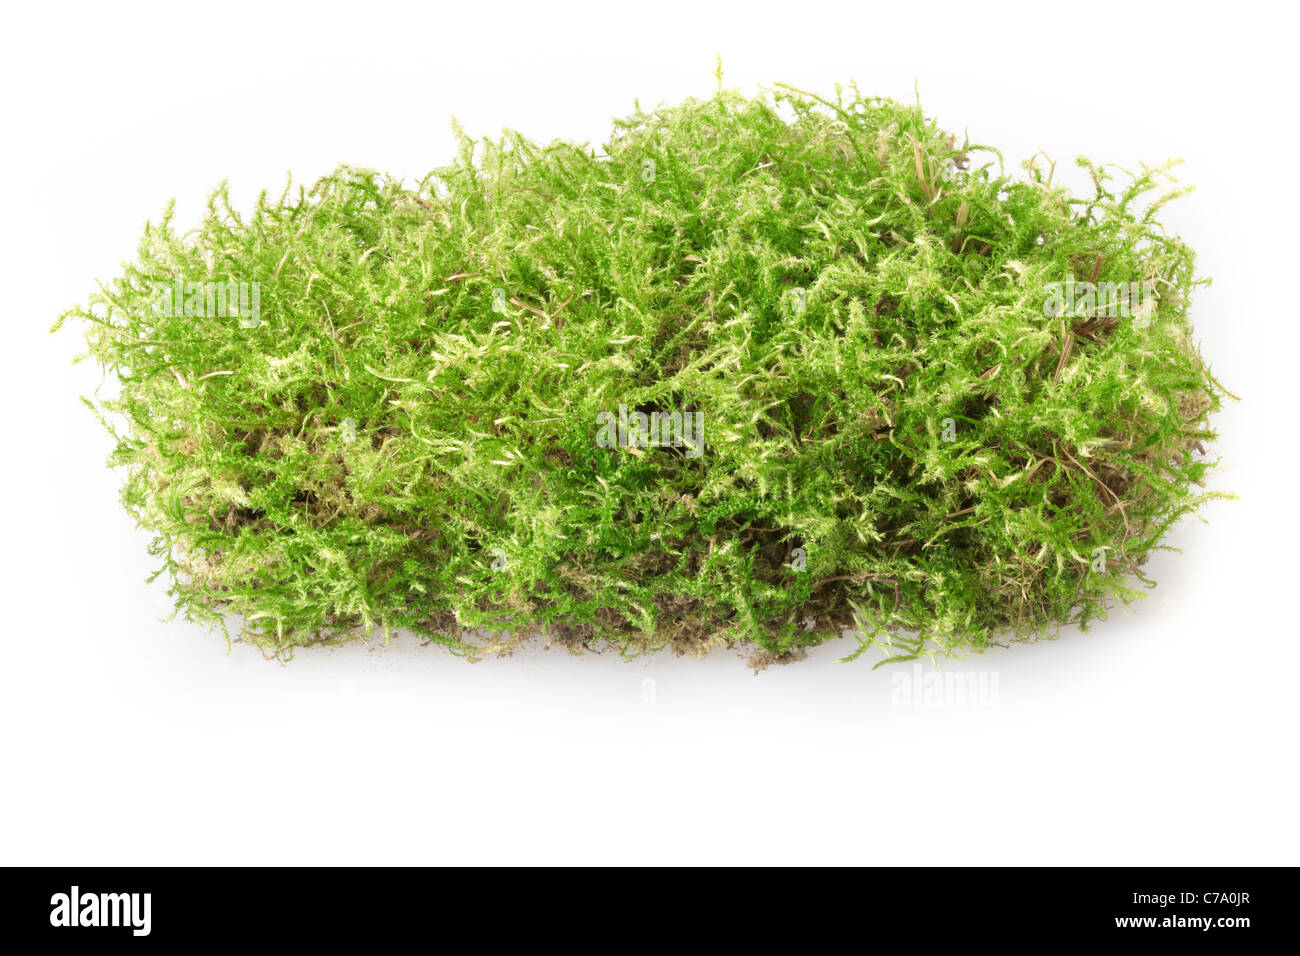 Green moss - Stock Image